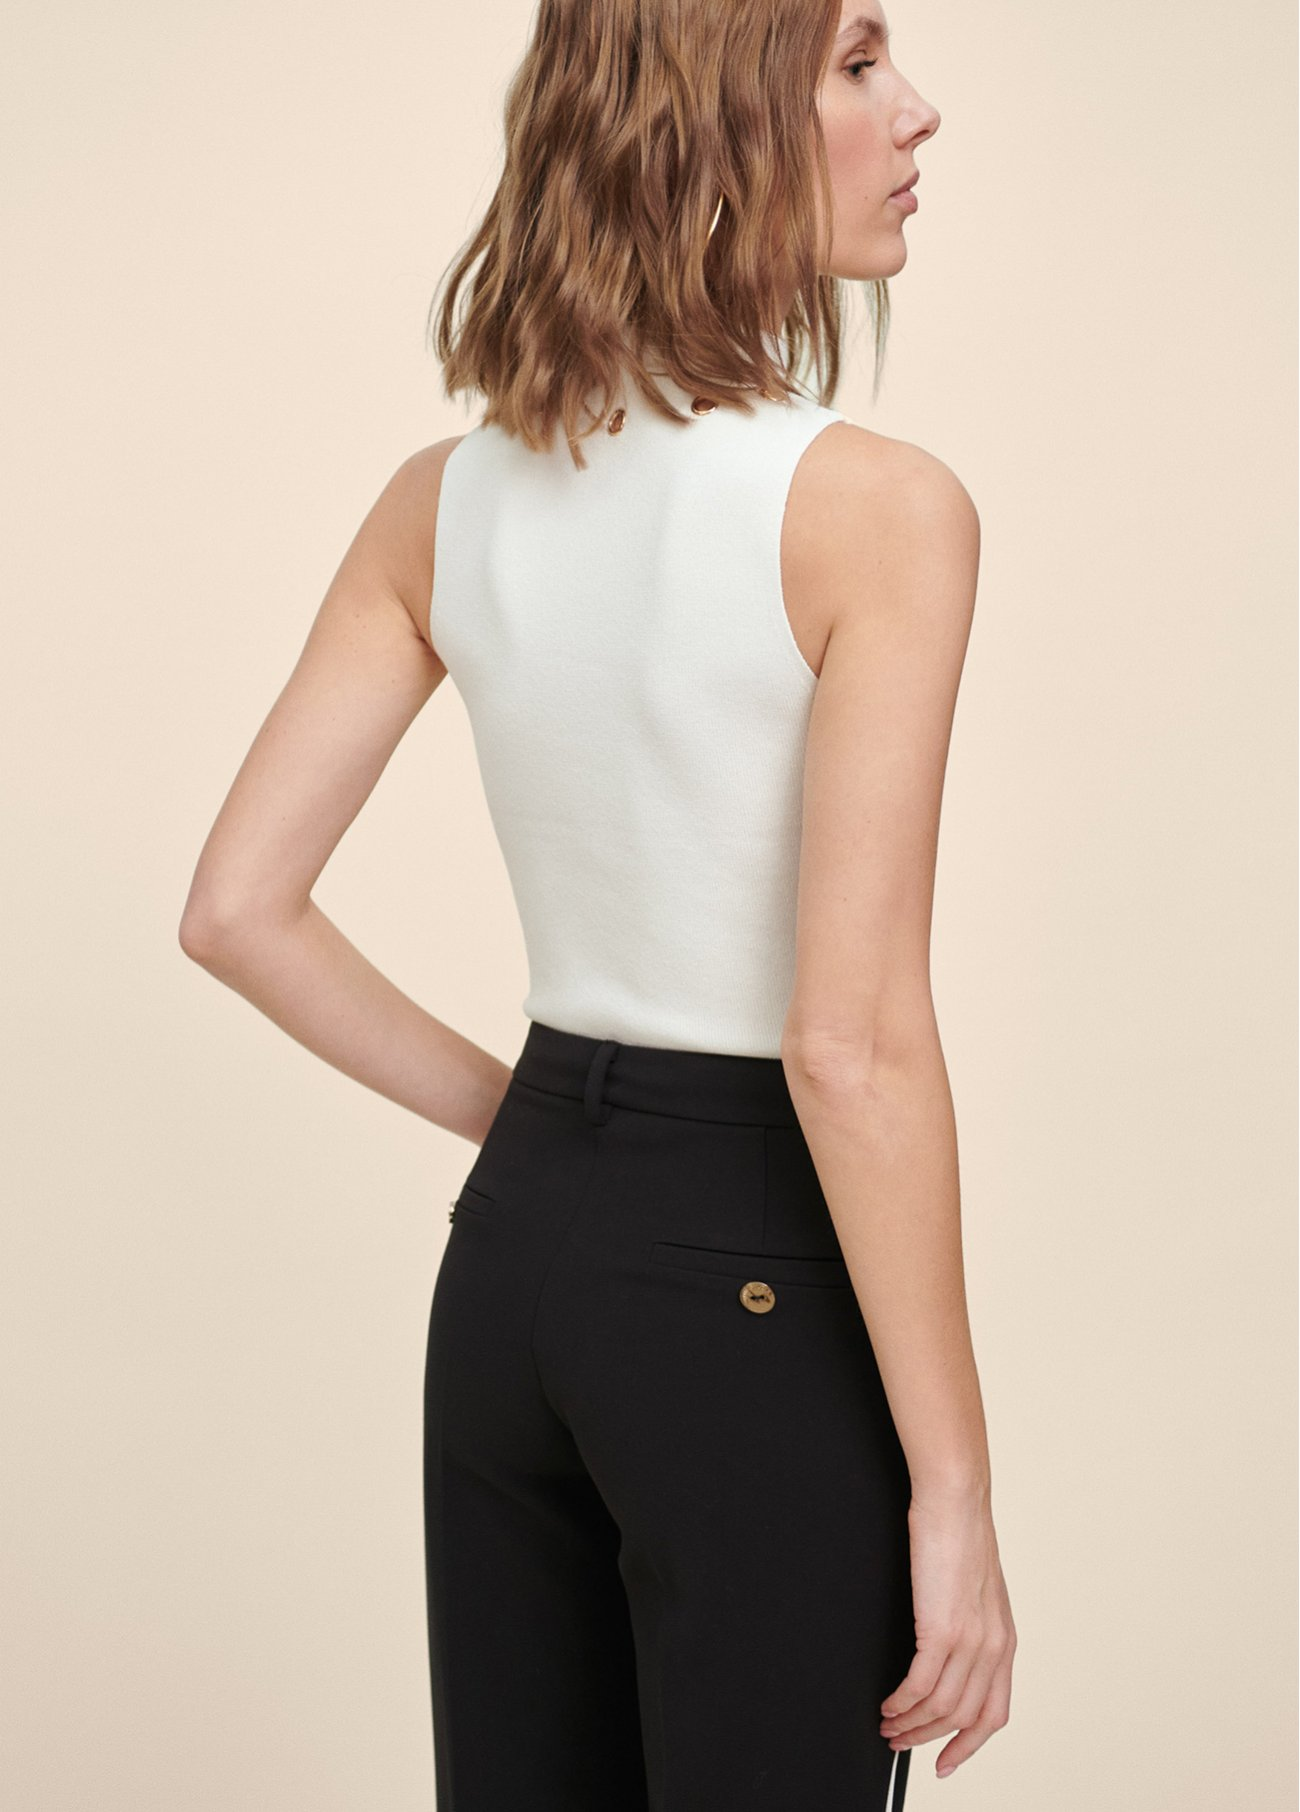 Sleeveless top with golden ring details